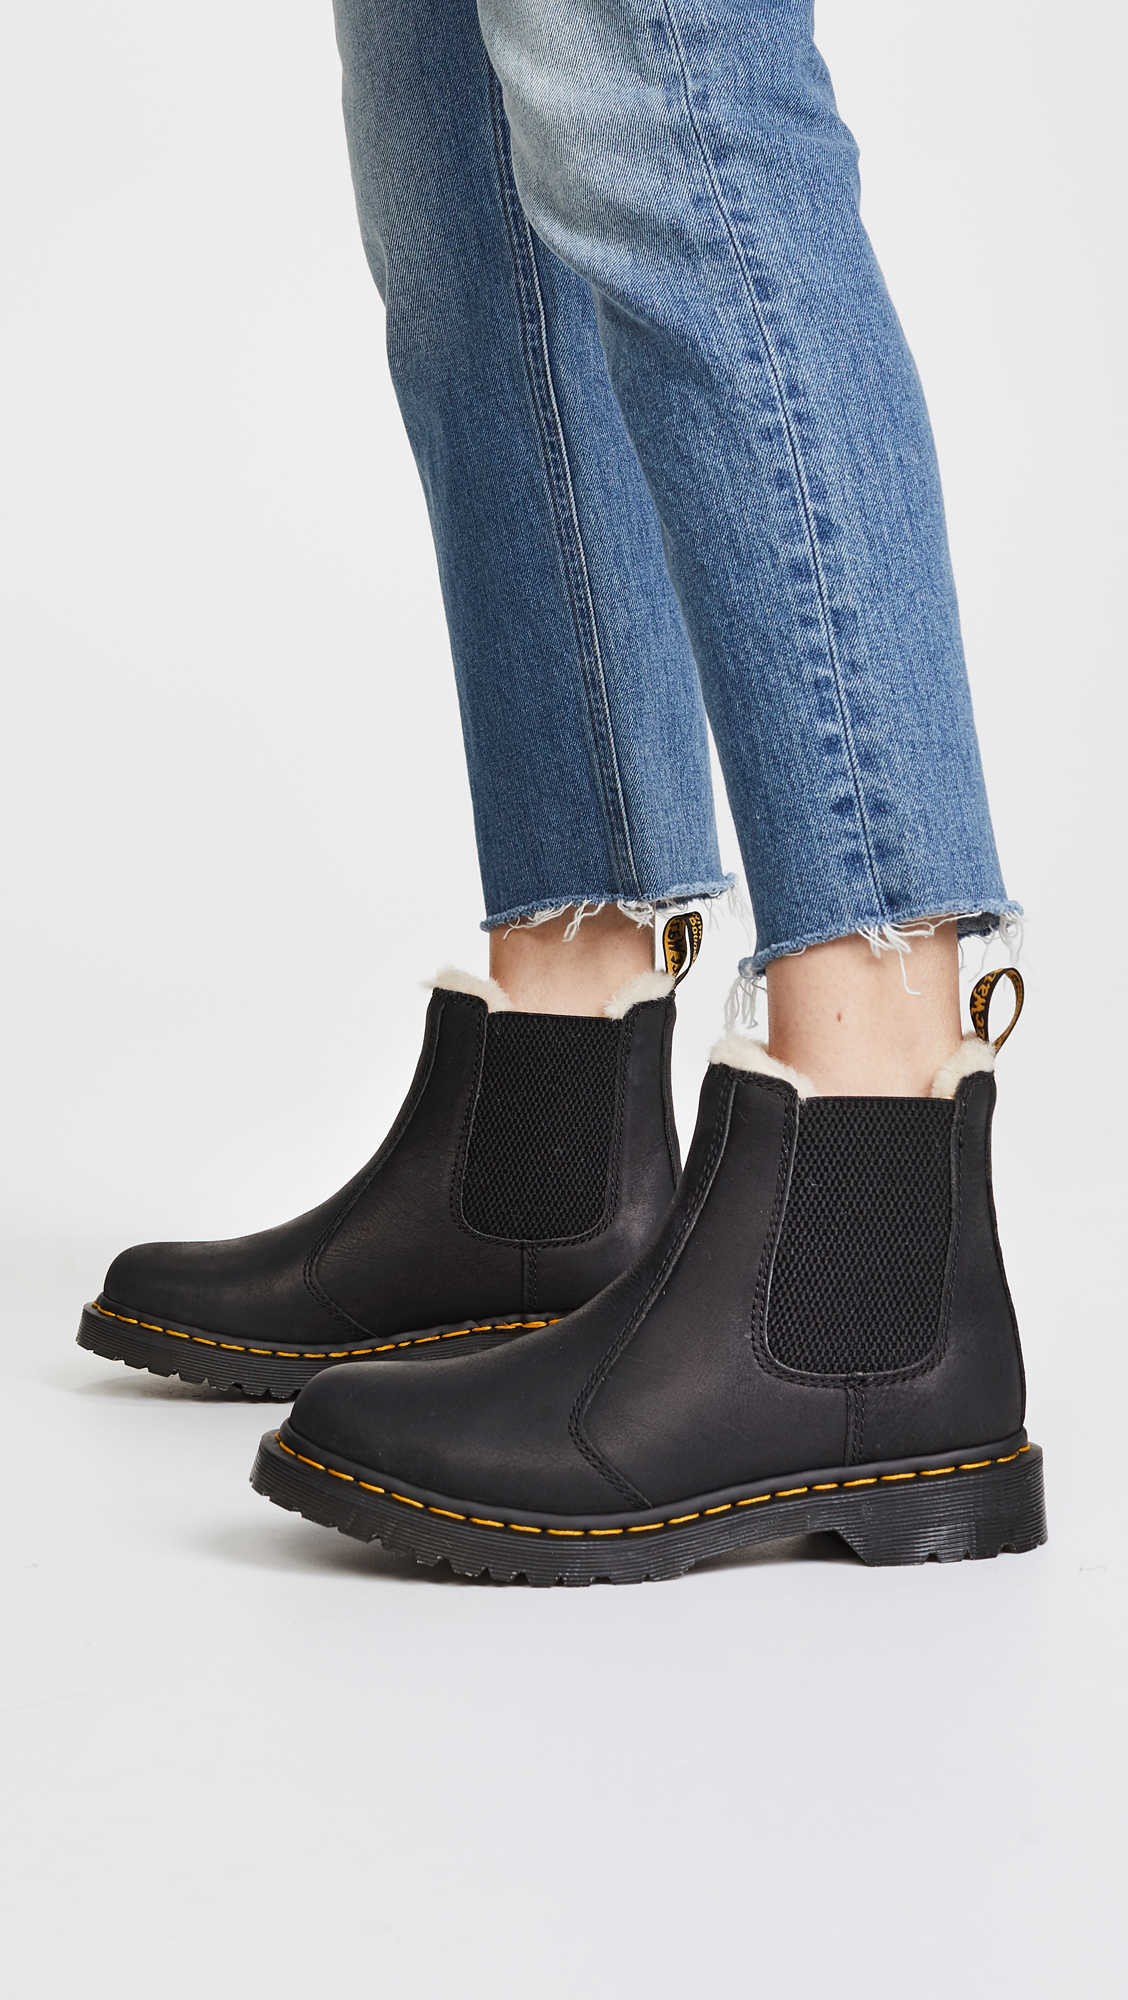 Toasty Footwear For Chilly Days Girls Of A Certain Age